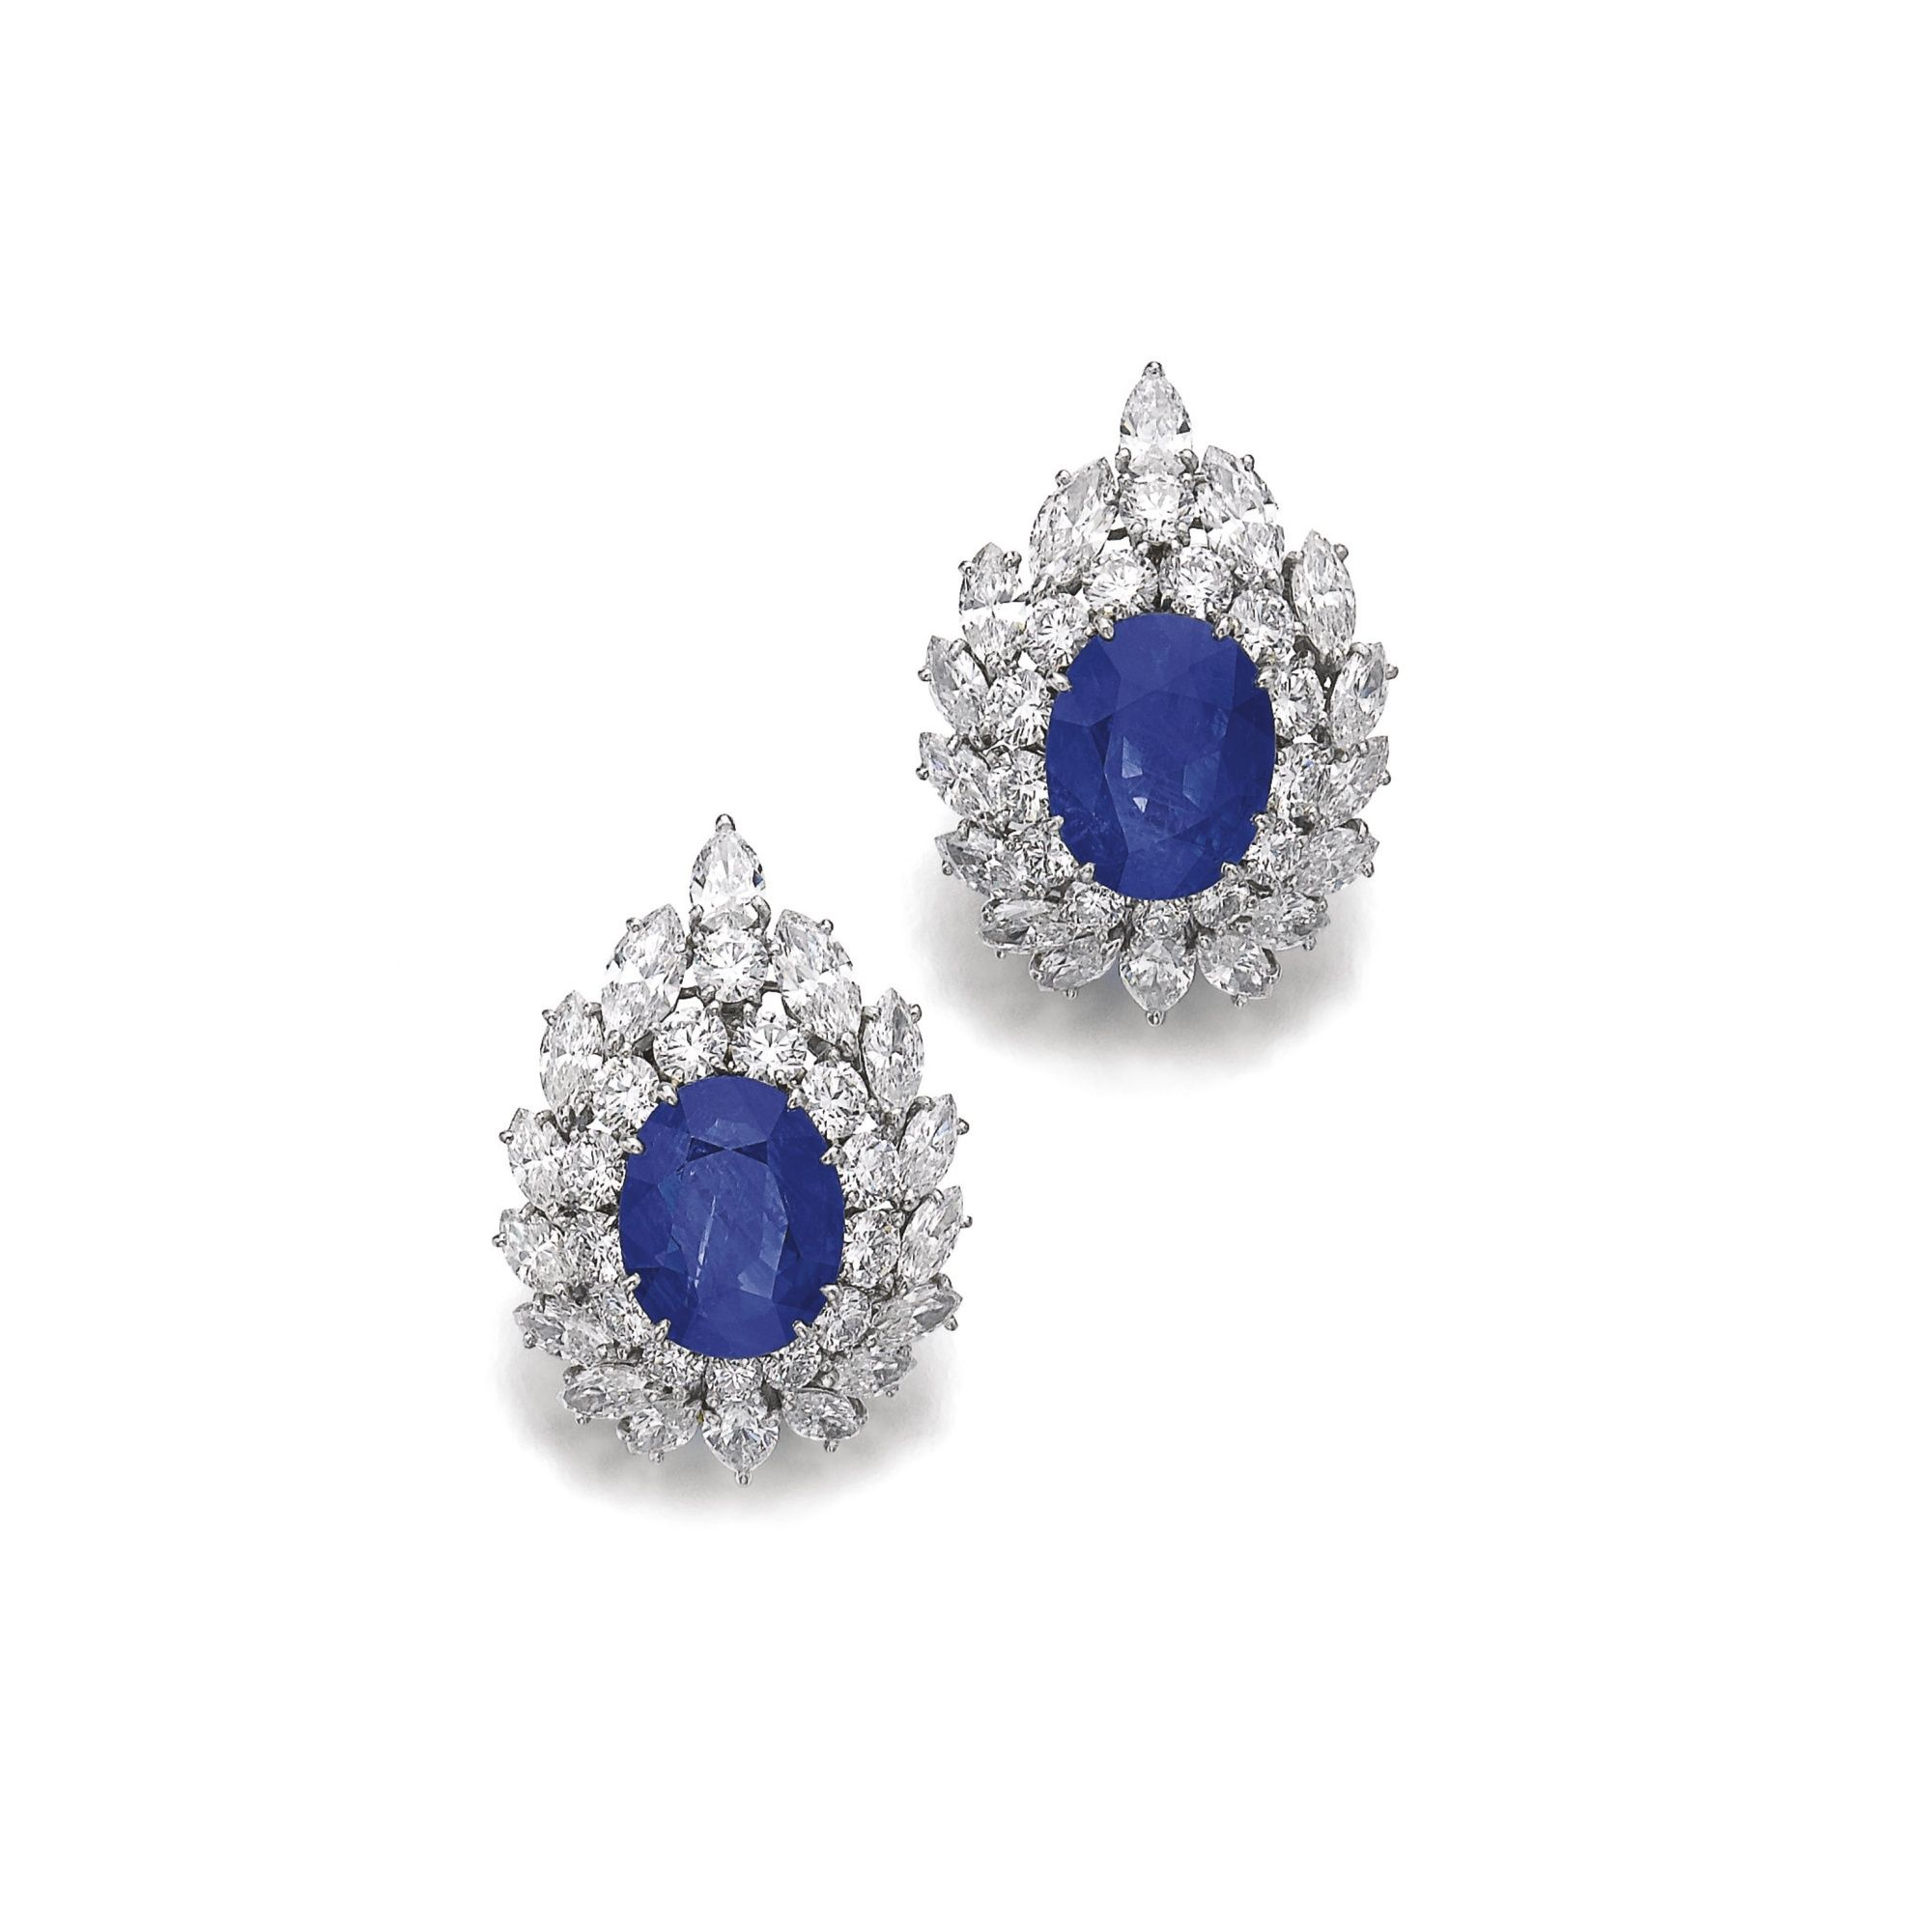 lr private magnificent noble collection taste celebration ecatalogue from marquise lot s sotheby jewelsbrandbra jewels a of and auctions en jewellery winston sapphire harry style